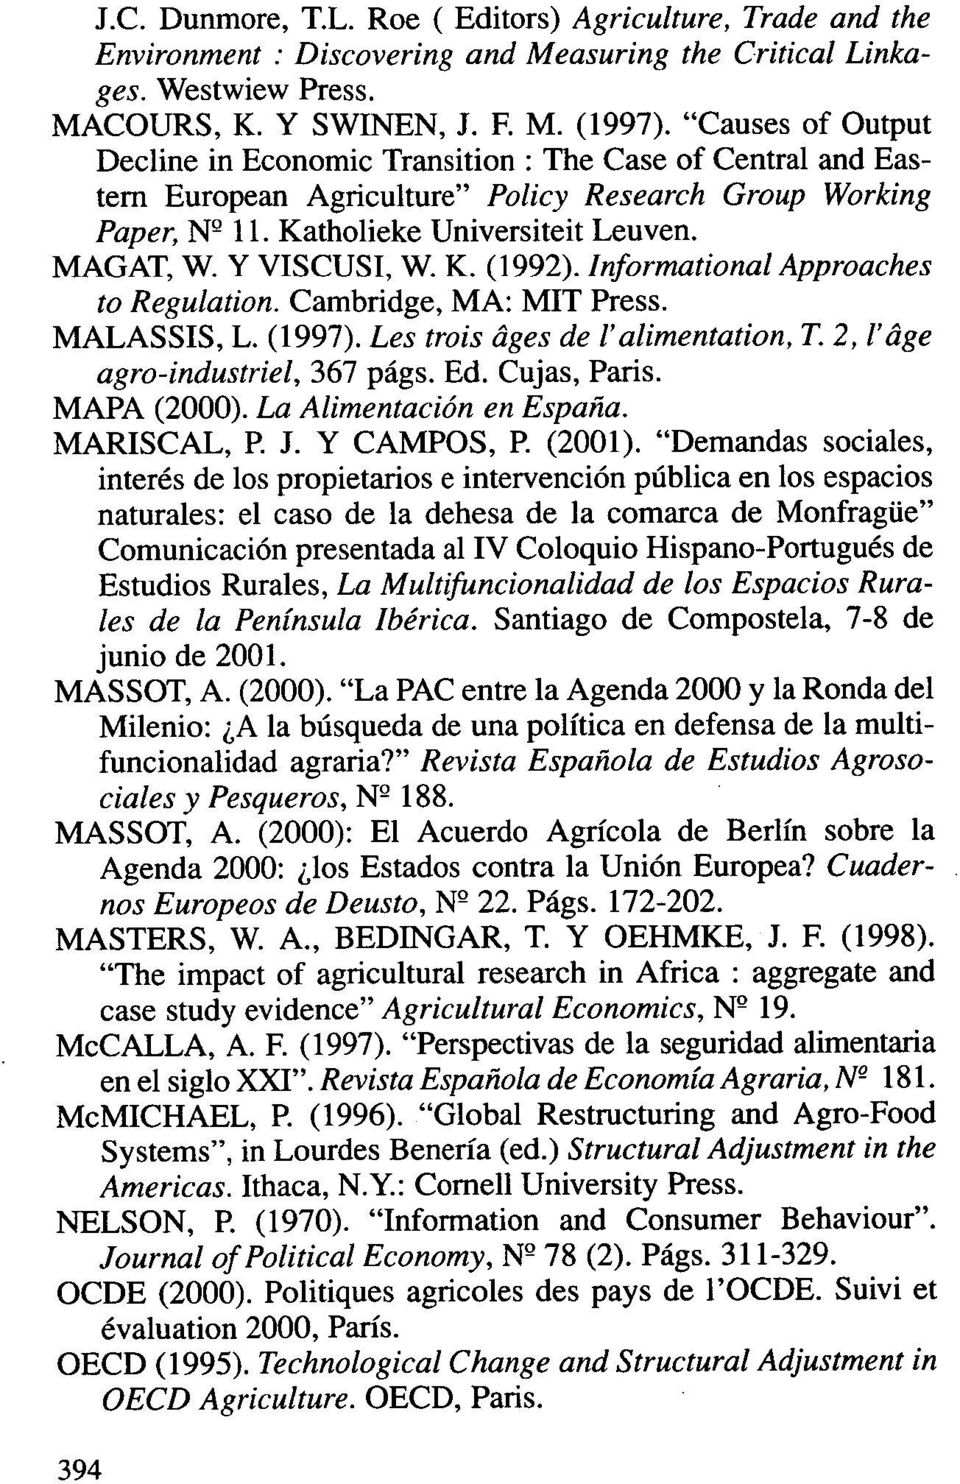 Y VISCUSI, W. K. (1992). Informational Approaches to Regulation. Cambridge, MA: MIT Press. MALASSIS, L. (1997). Les trois áges de l'alimentation, T. 2, l'áge agro-industriel, 367 págs. Ed.